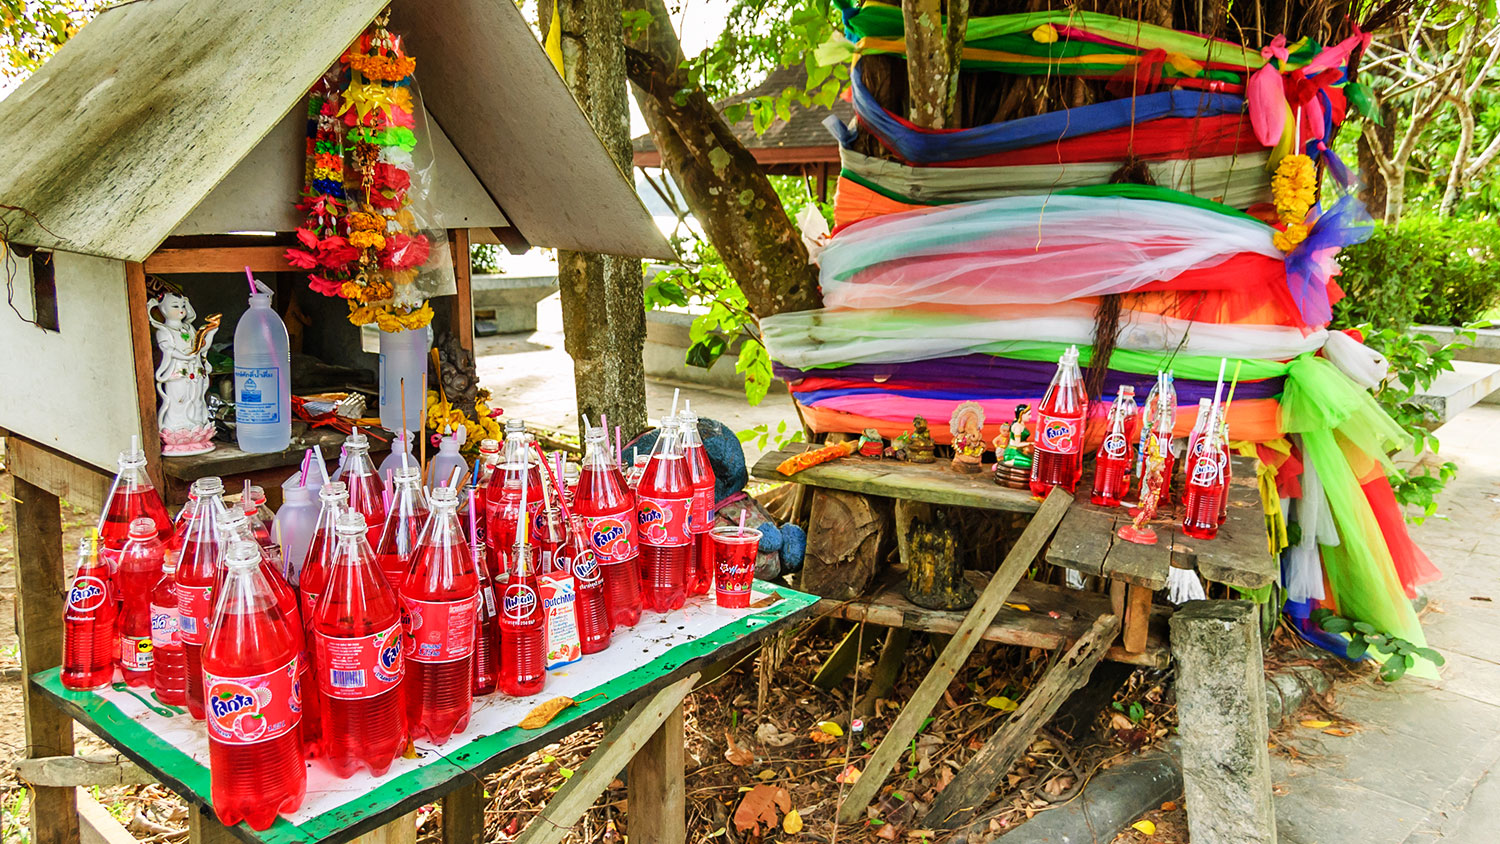 strawberry fanta in Thailand spirit house